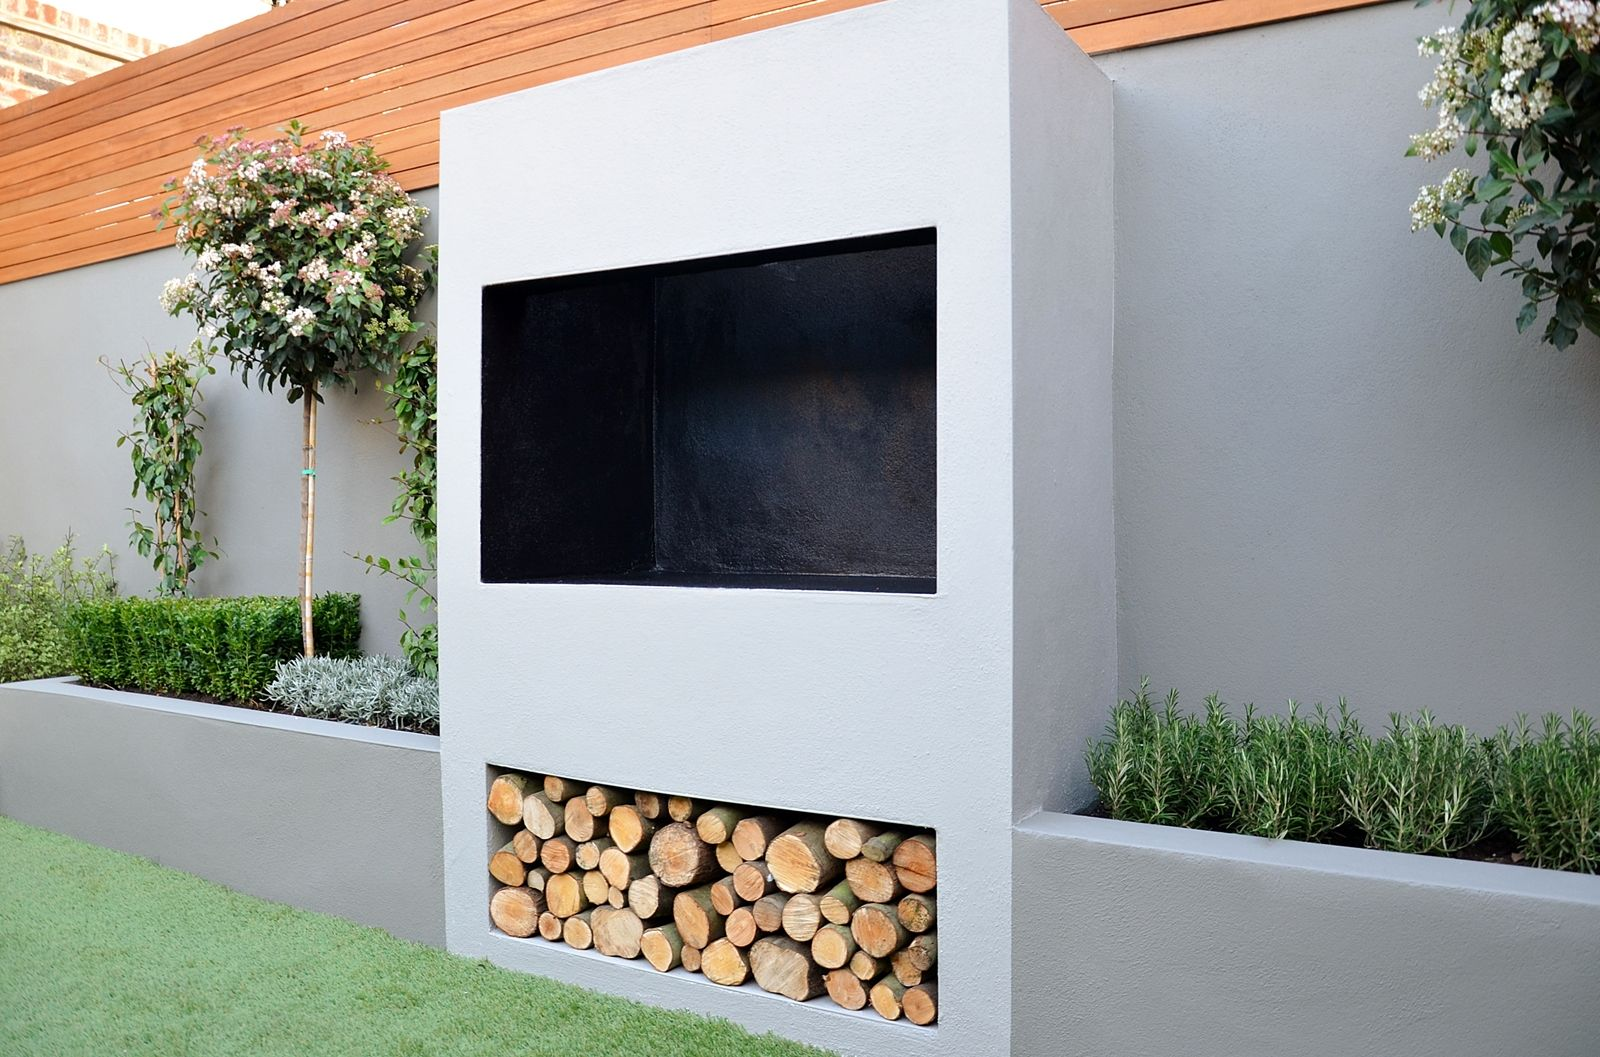 Outdoor Fireplace BBQ Fire Raised Beds Modern Garden Design London